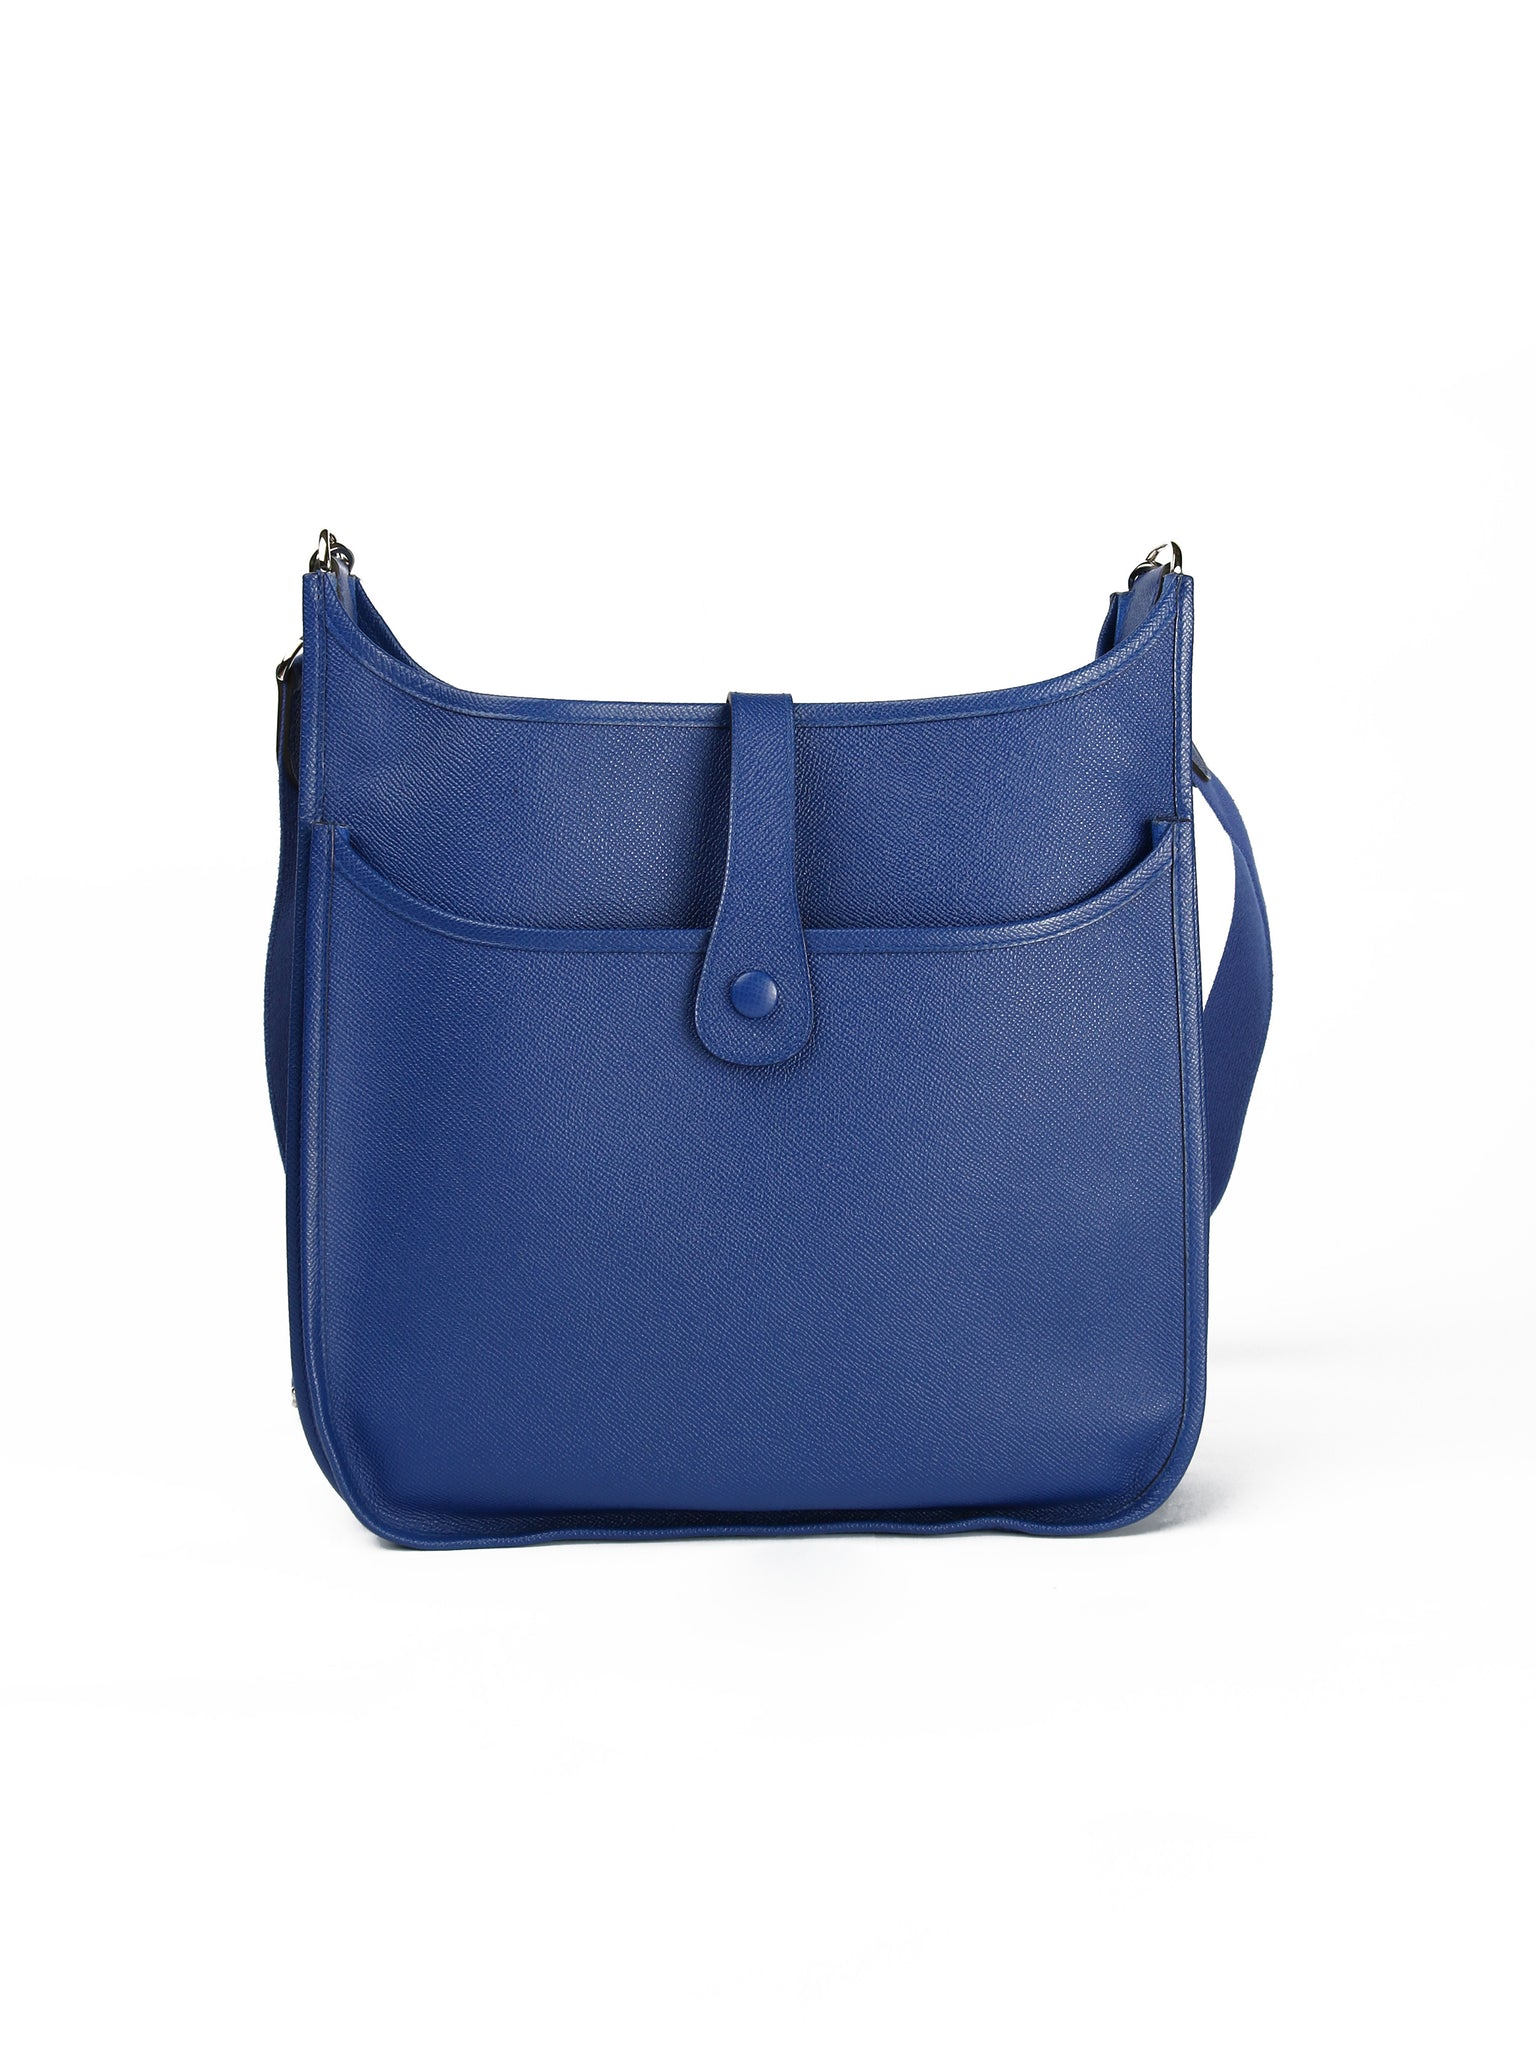 7d361bc2909d HERMÈS EVELYNE BAG (Blue Electric Epsom Leather) – Loved by Pie